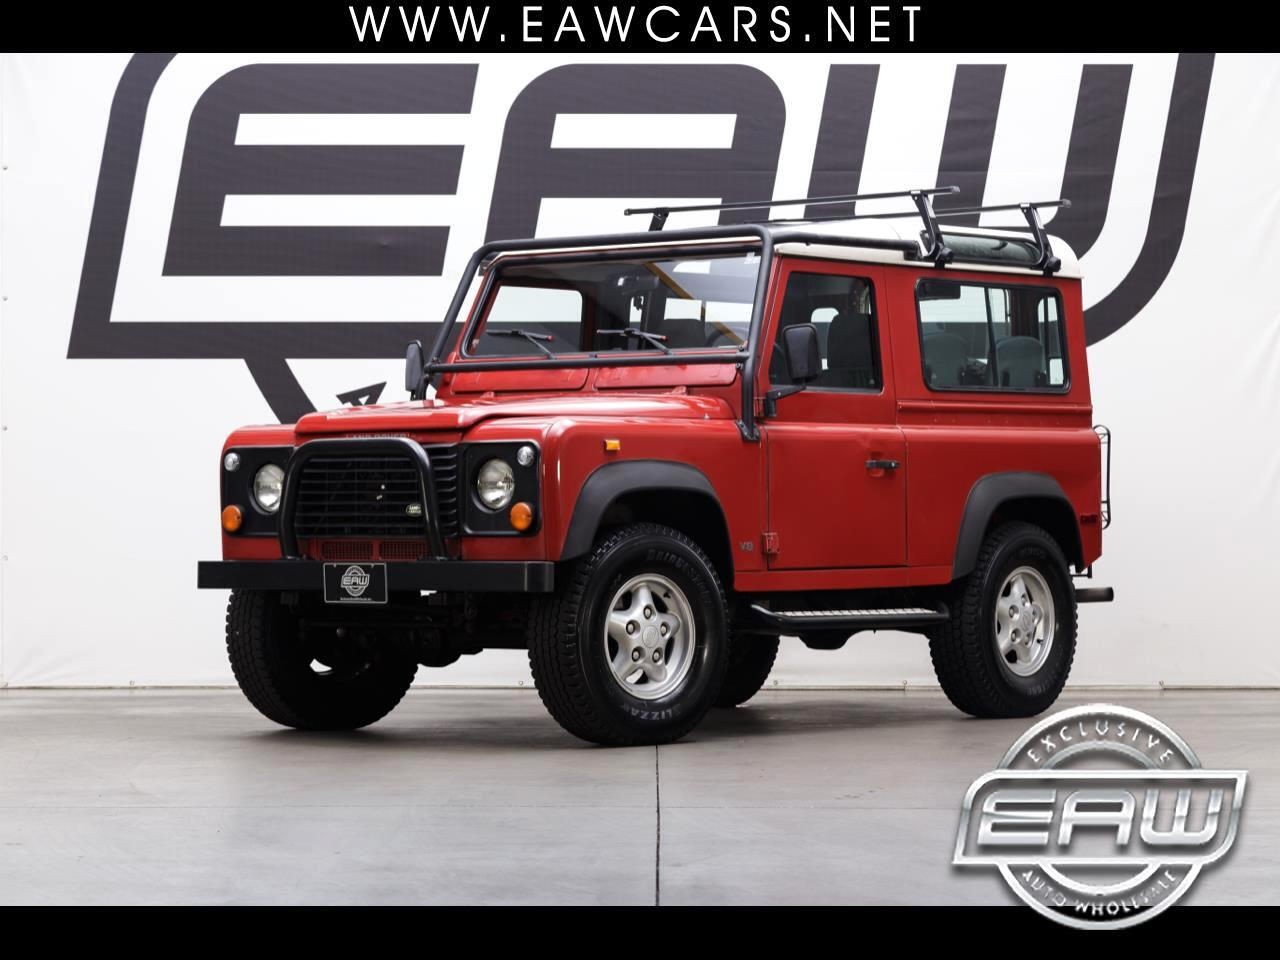 1997 Land Rover Defender 90 Hard-Top